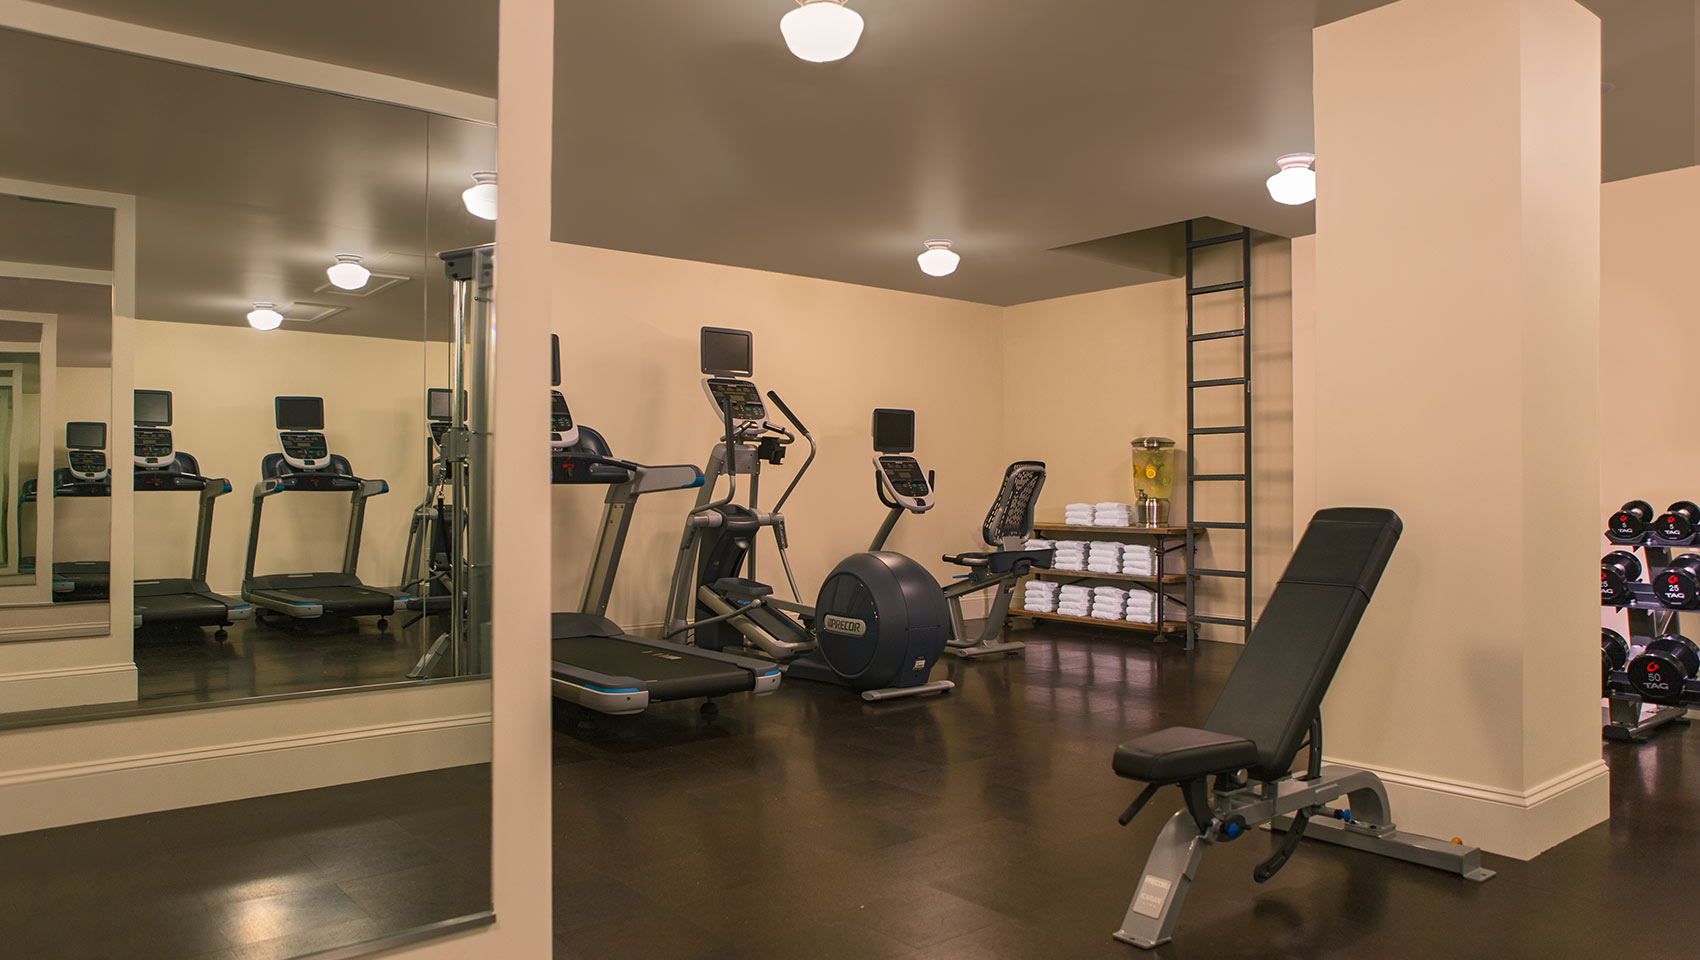 Kimpton palladian fitness center